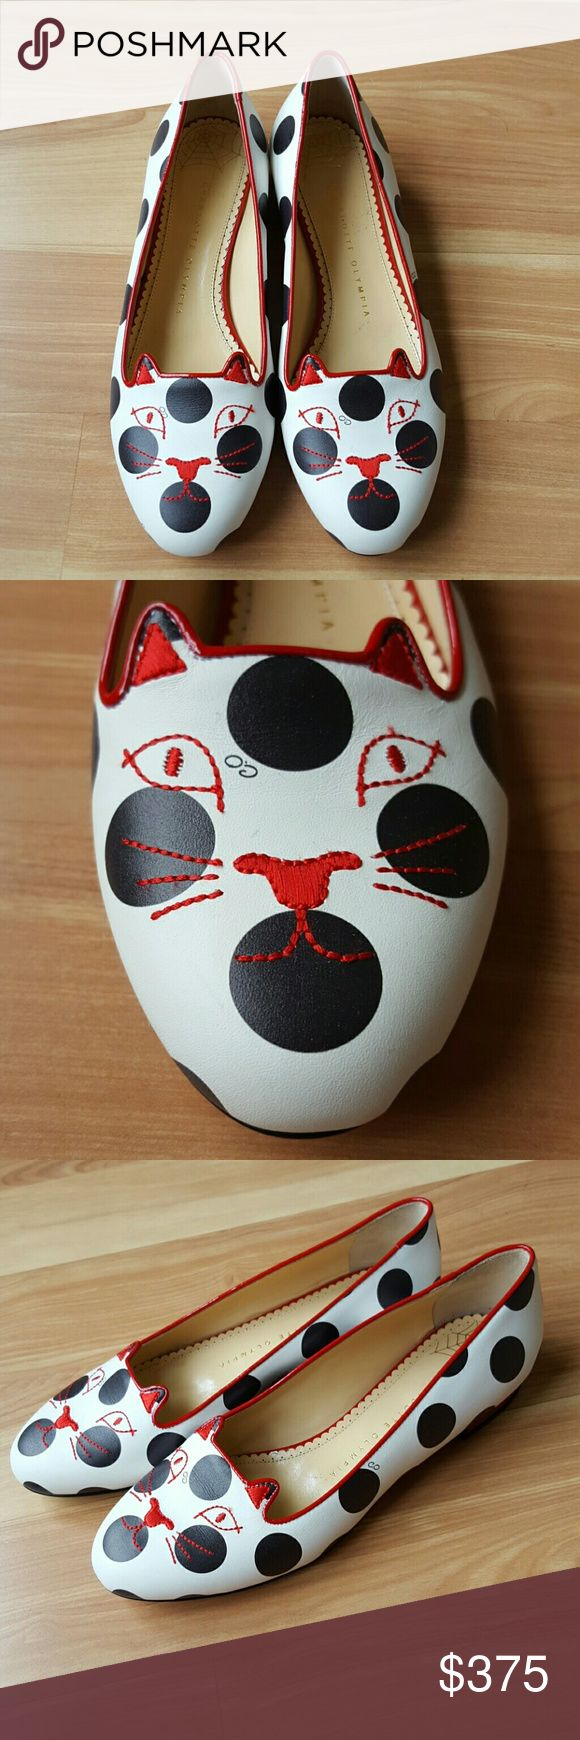 Charlotte Olympia Polka Dot Kitty Flat A pair of red ears and a stitched face hint at the iconic feline origins of a calfskin leather flat covered in black-and-white polka dots.  Lightly padded footbed Leather upper, lining and sole Made in Italy  Fits US 7.5 to US 8 New with very little shopware.   No box or dust bag. No trades.  Thanks for looking! Charlotte Olympia Shoes Flats & Loafers